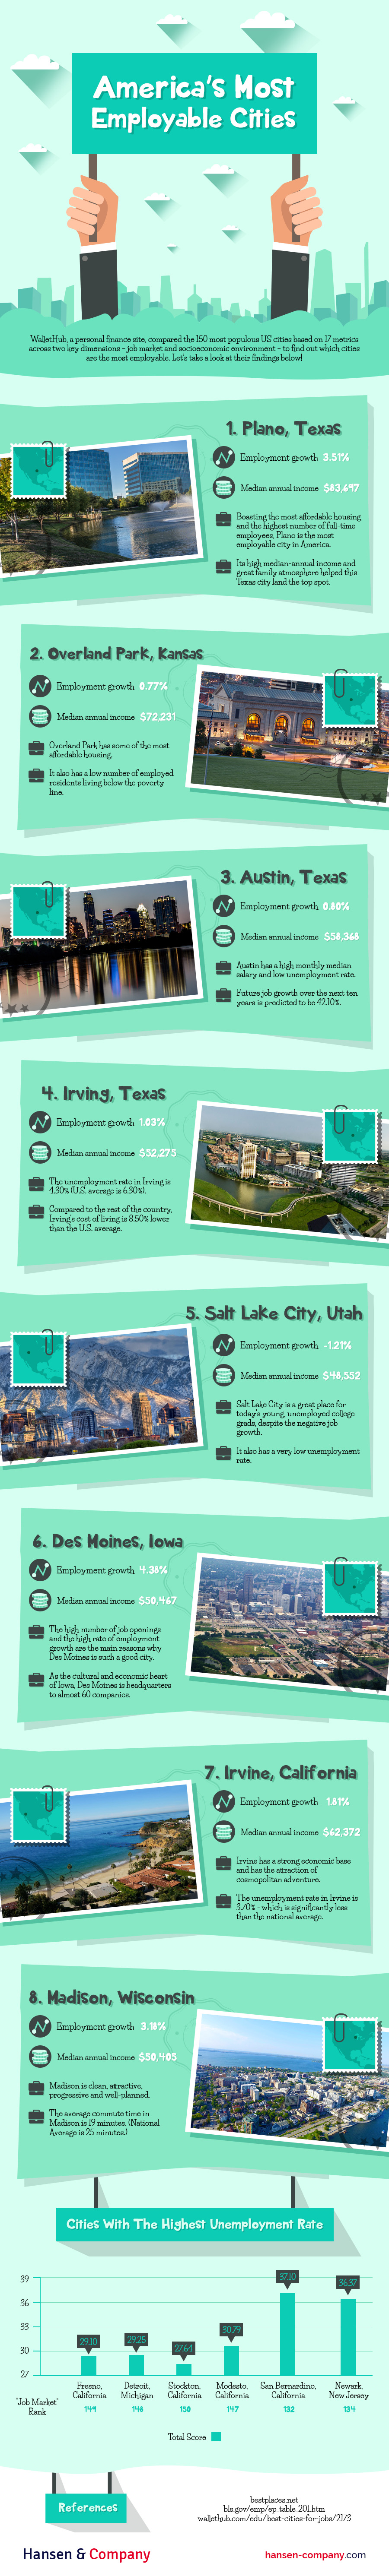 Top of the Employment Pops: The Best Employment Destinations in America - Infographic